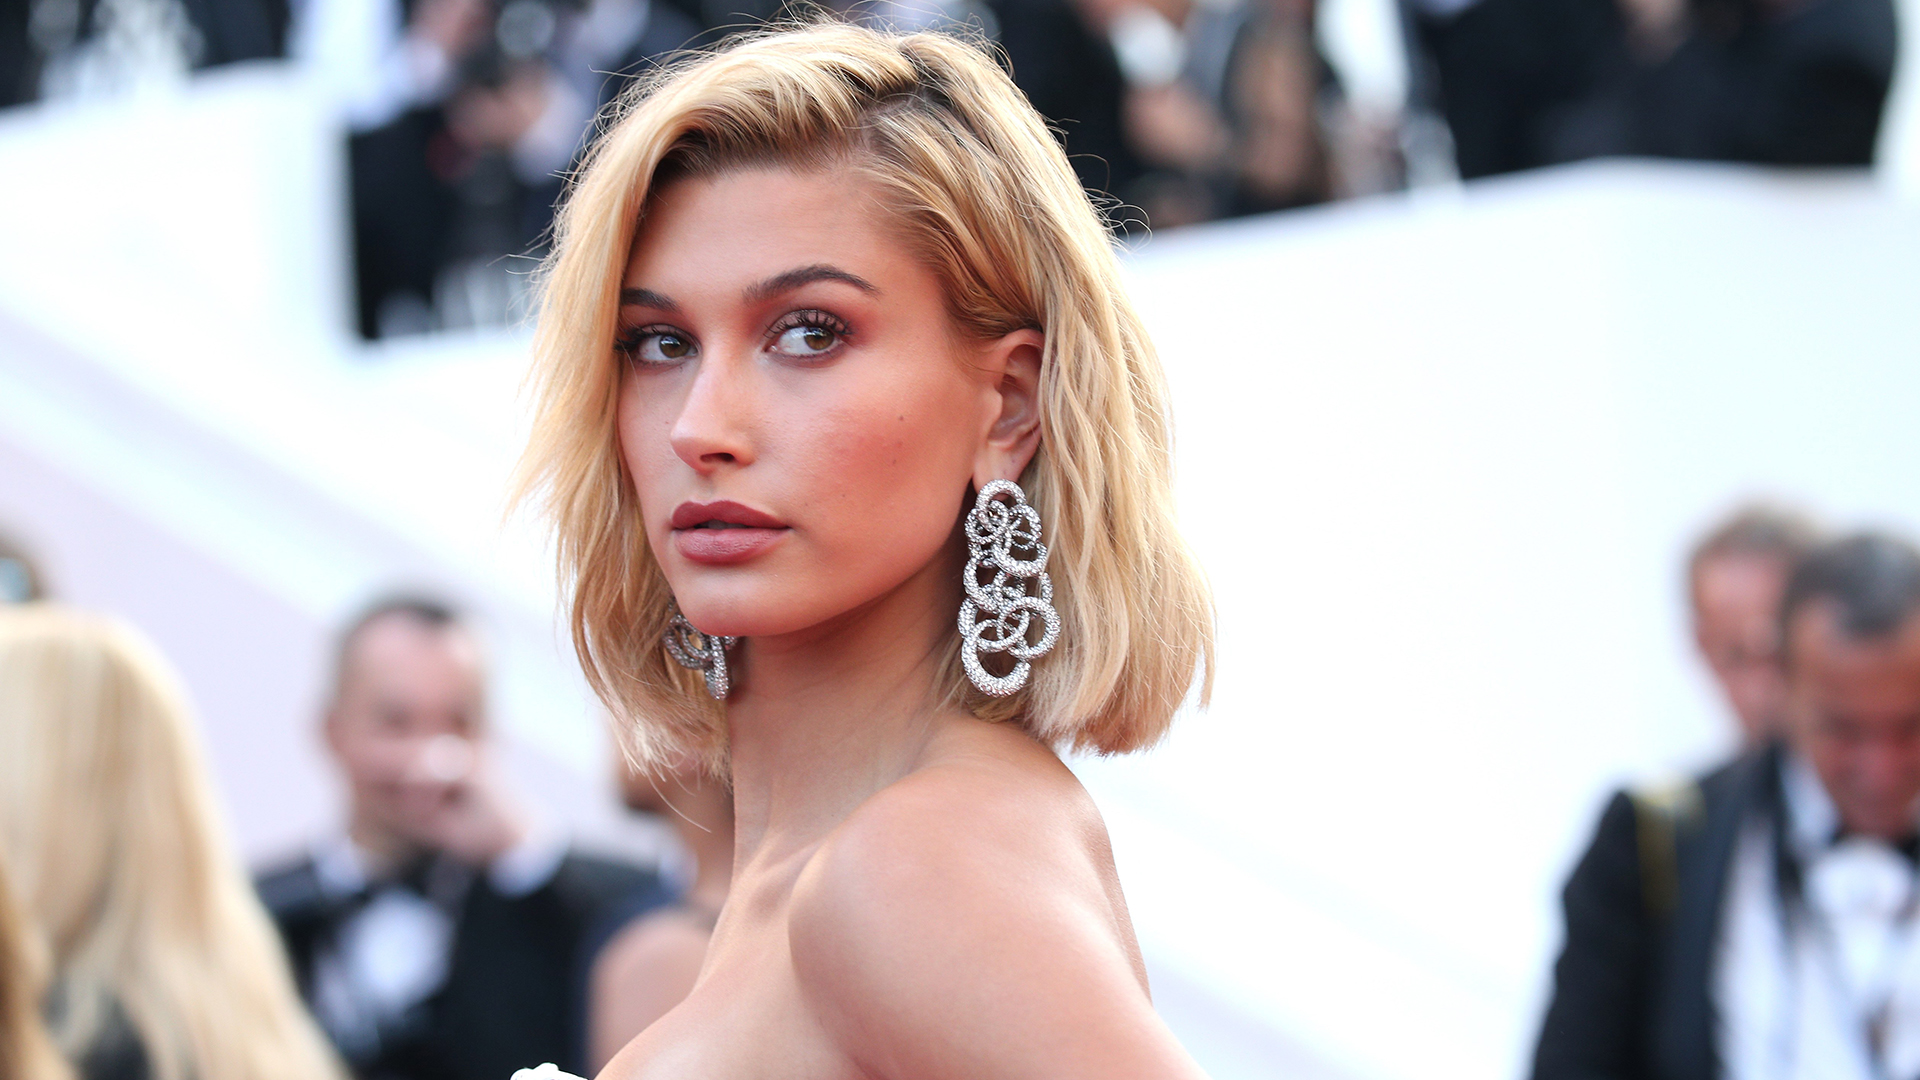 Hailey Baldwin Gala Photo - Hailey Baldwin Bieber Net Worth, Pics, Wallpapers, Career and Biography